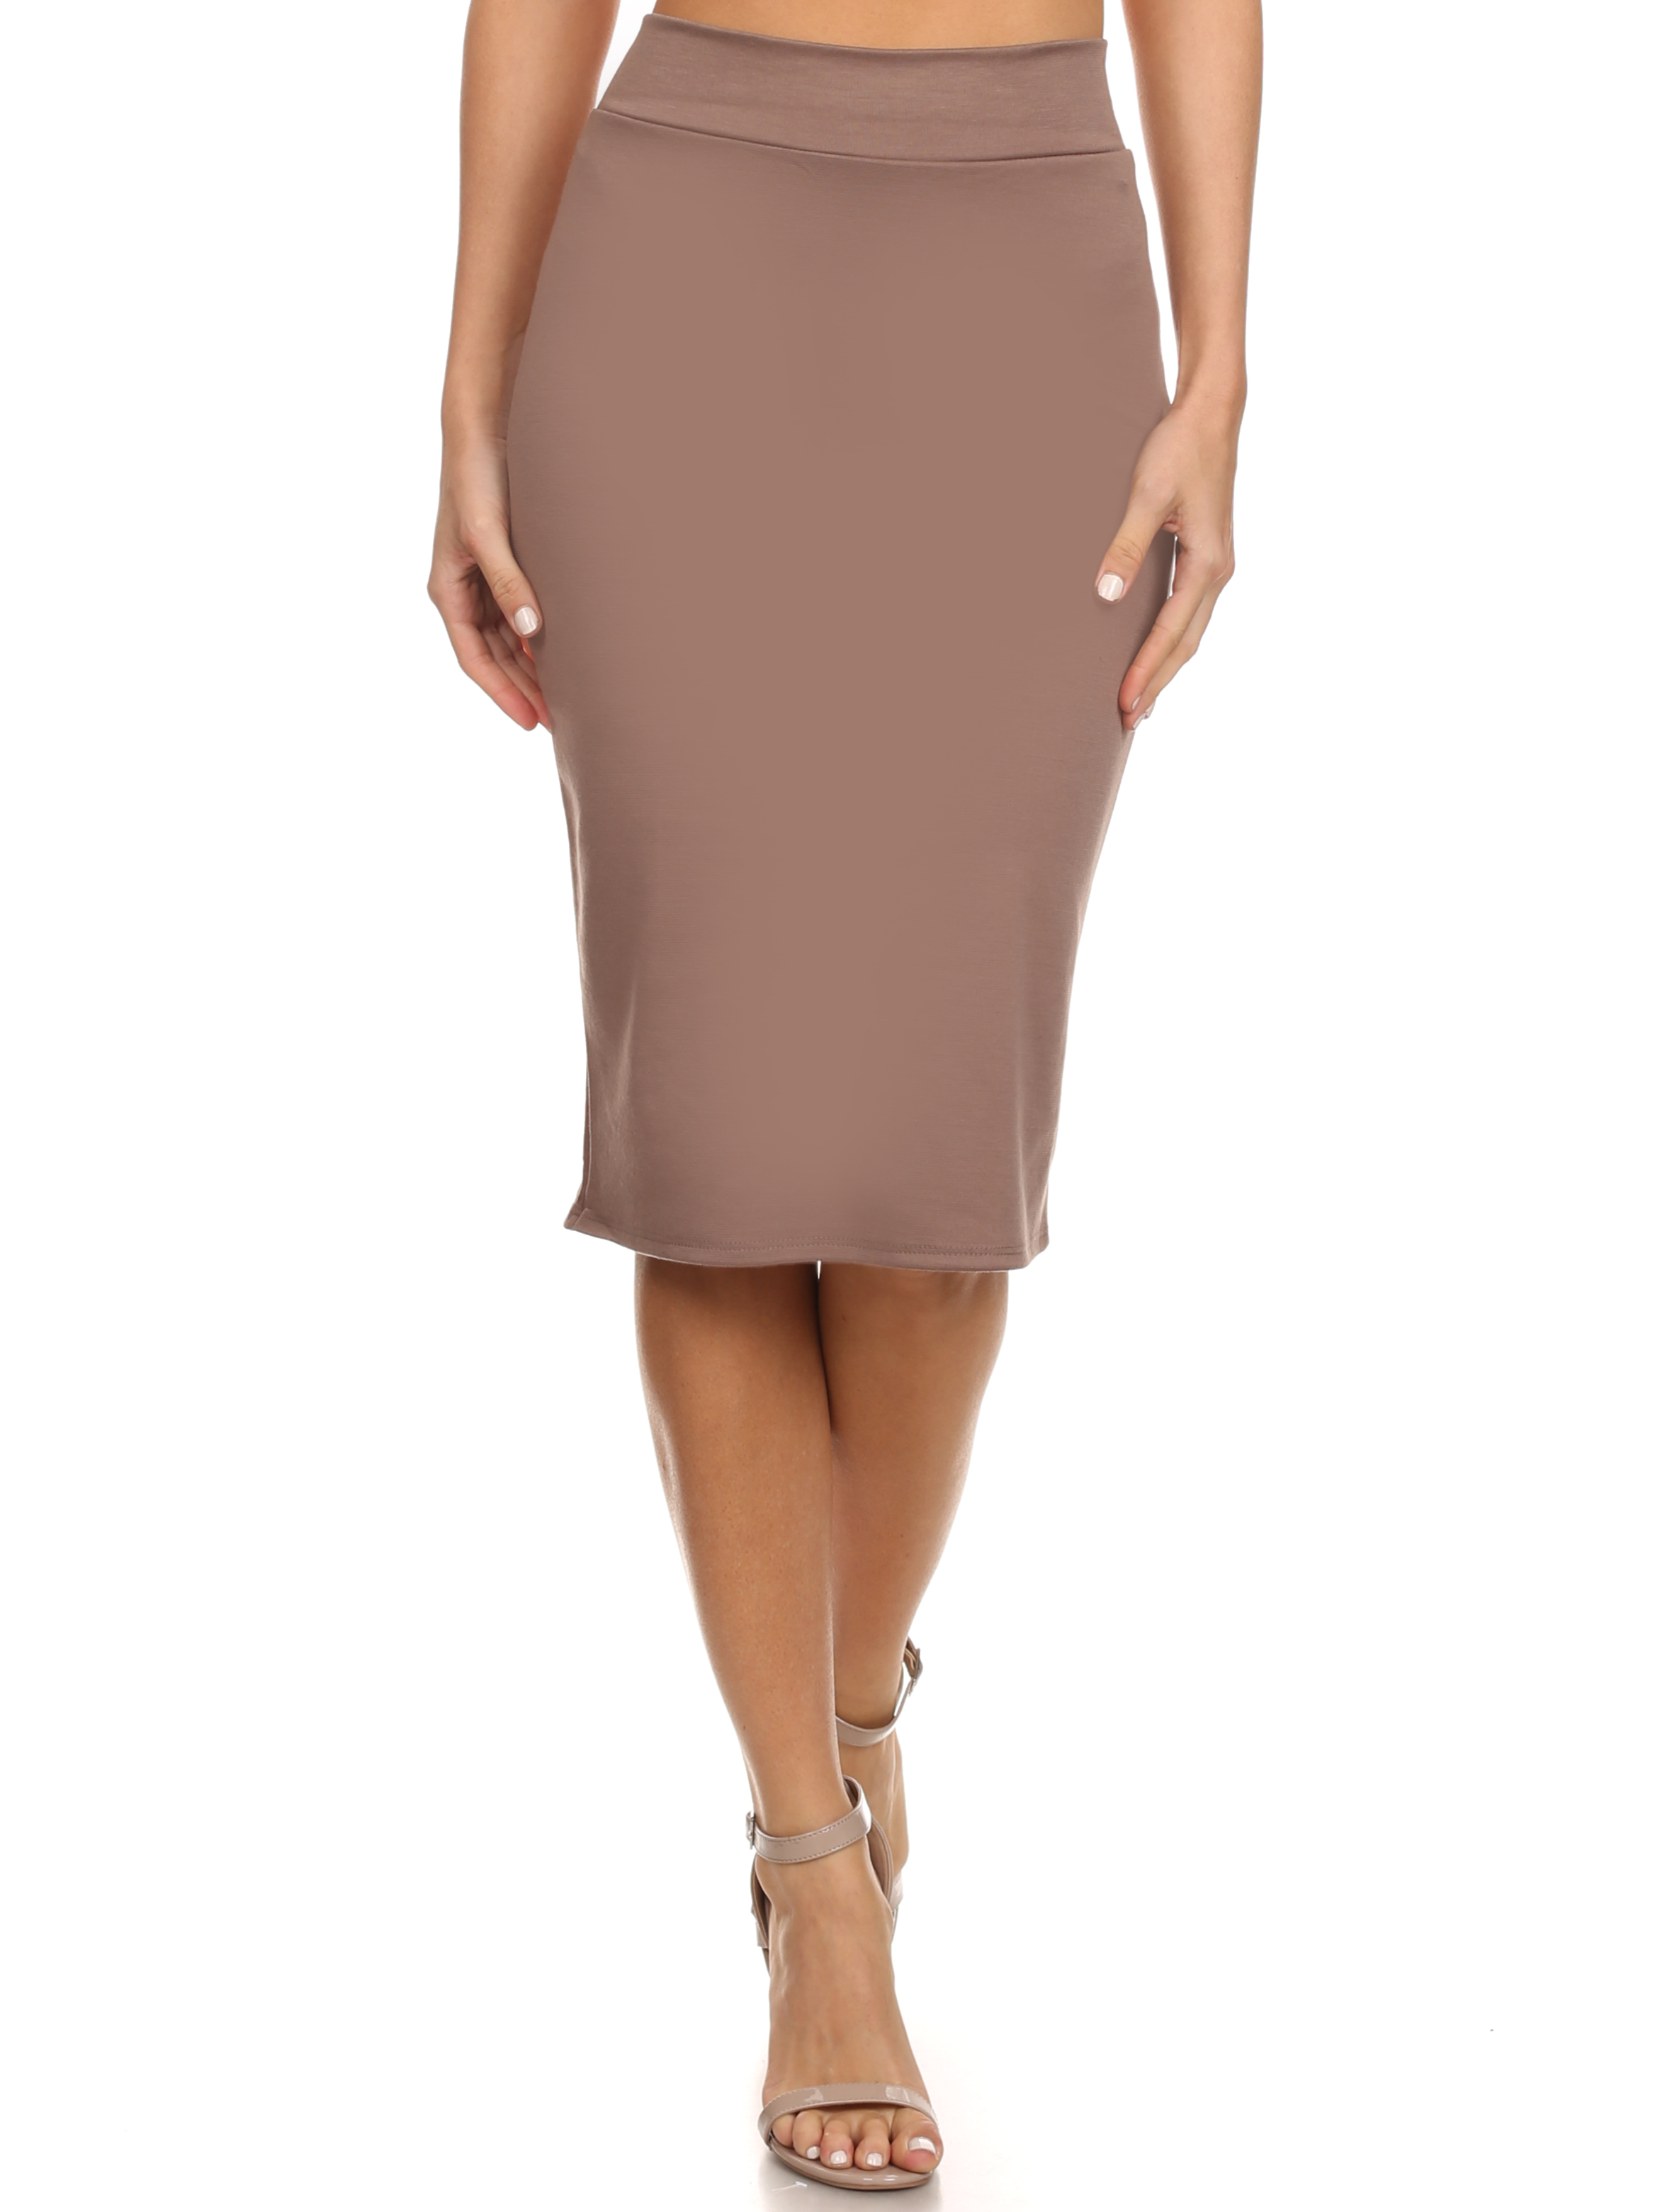 0ad5f6200ff Women's Below the Knee Pencil Skirt for Office Wear - Made in USA in ...